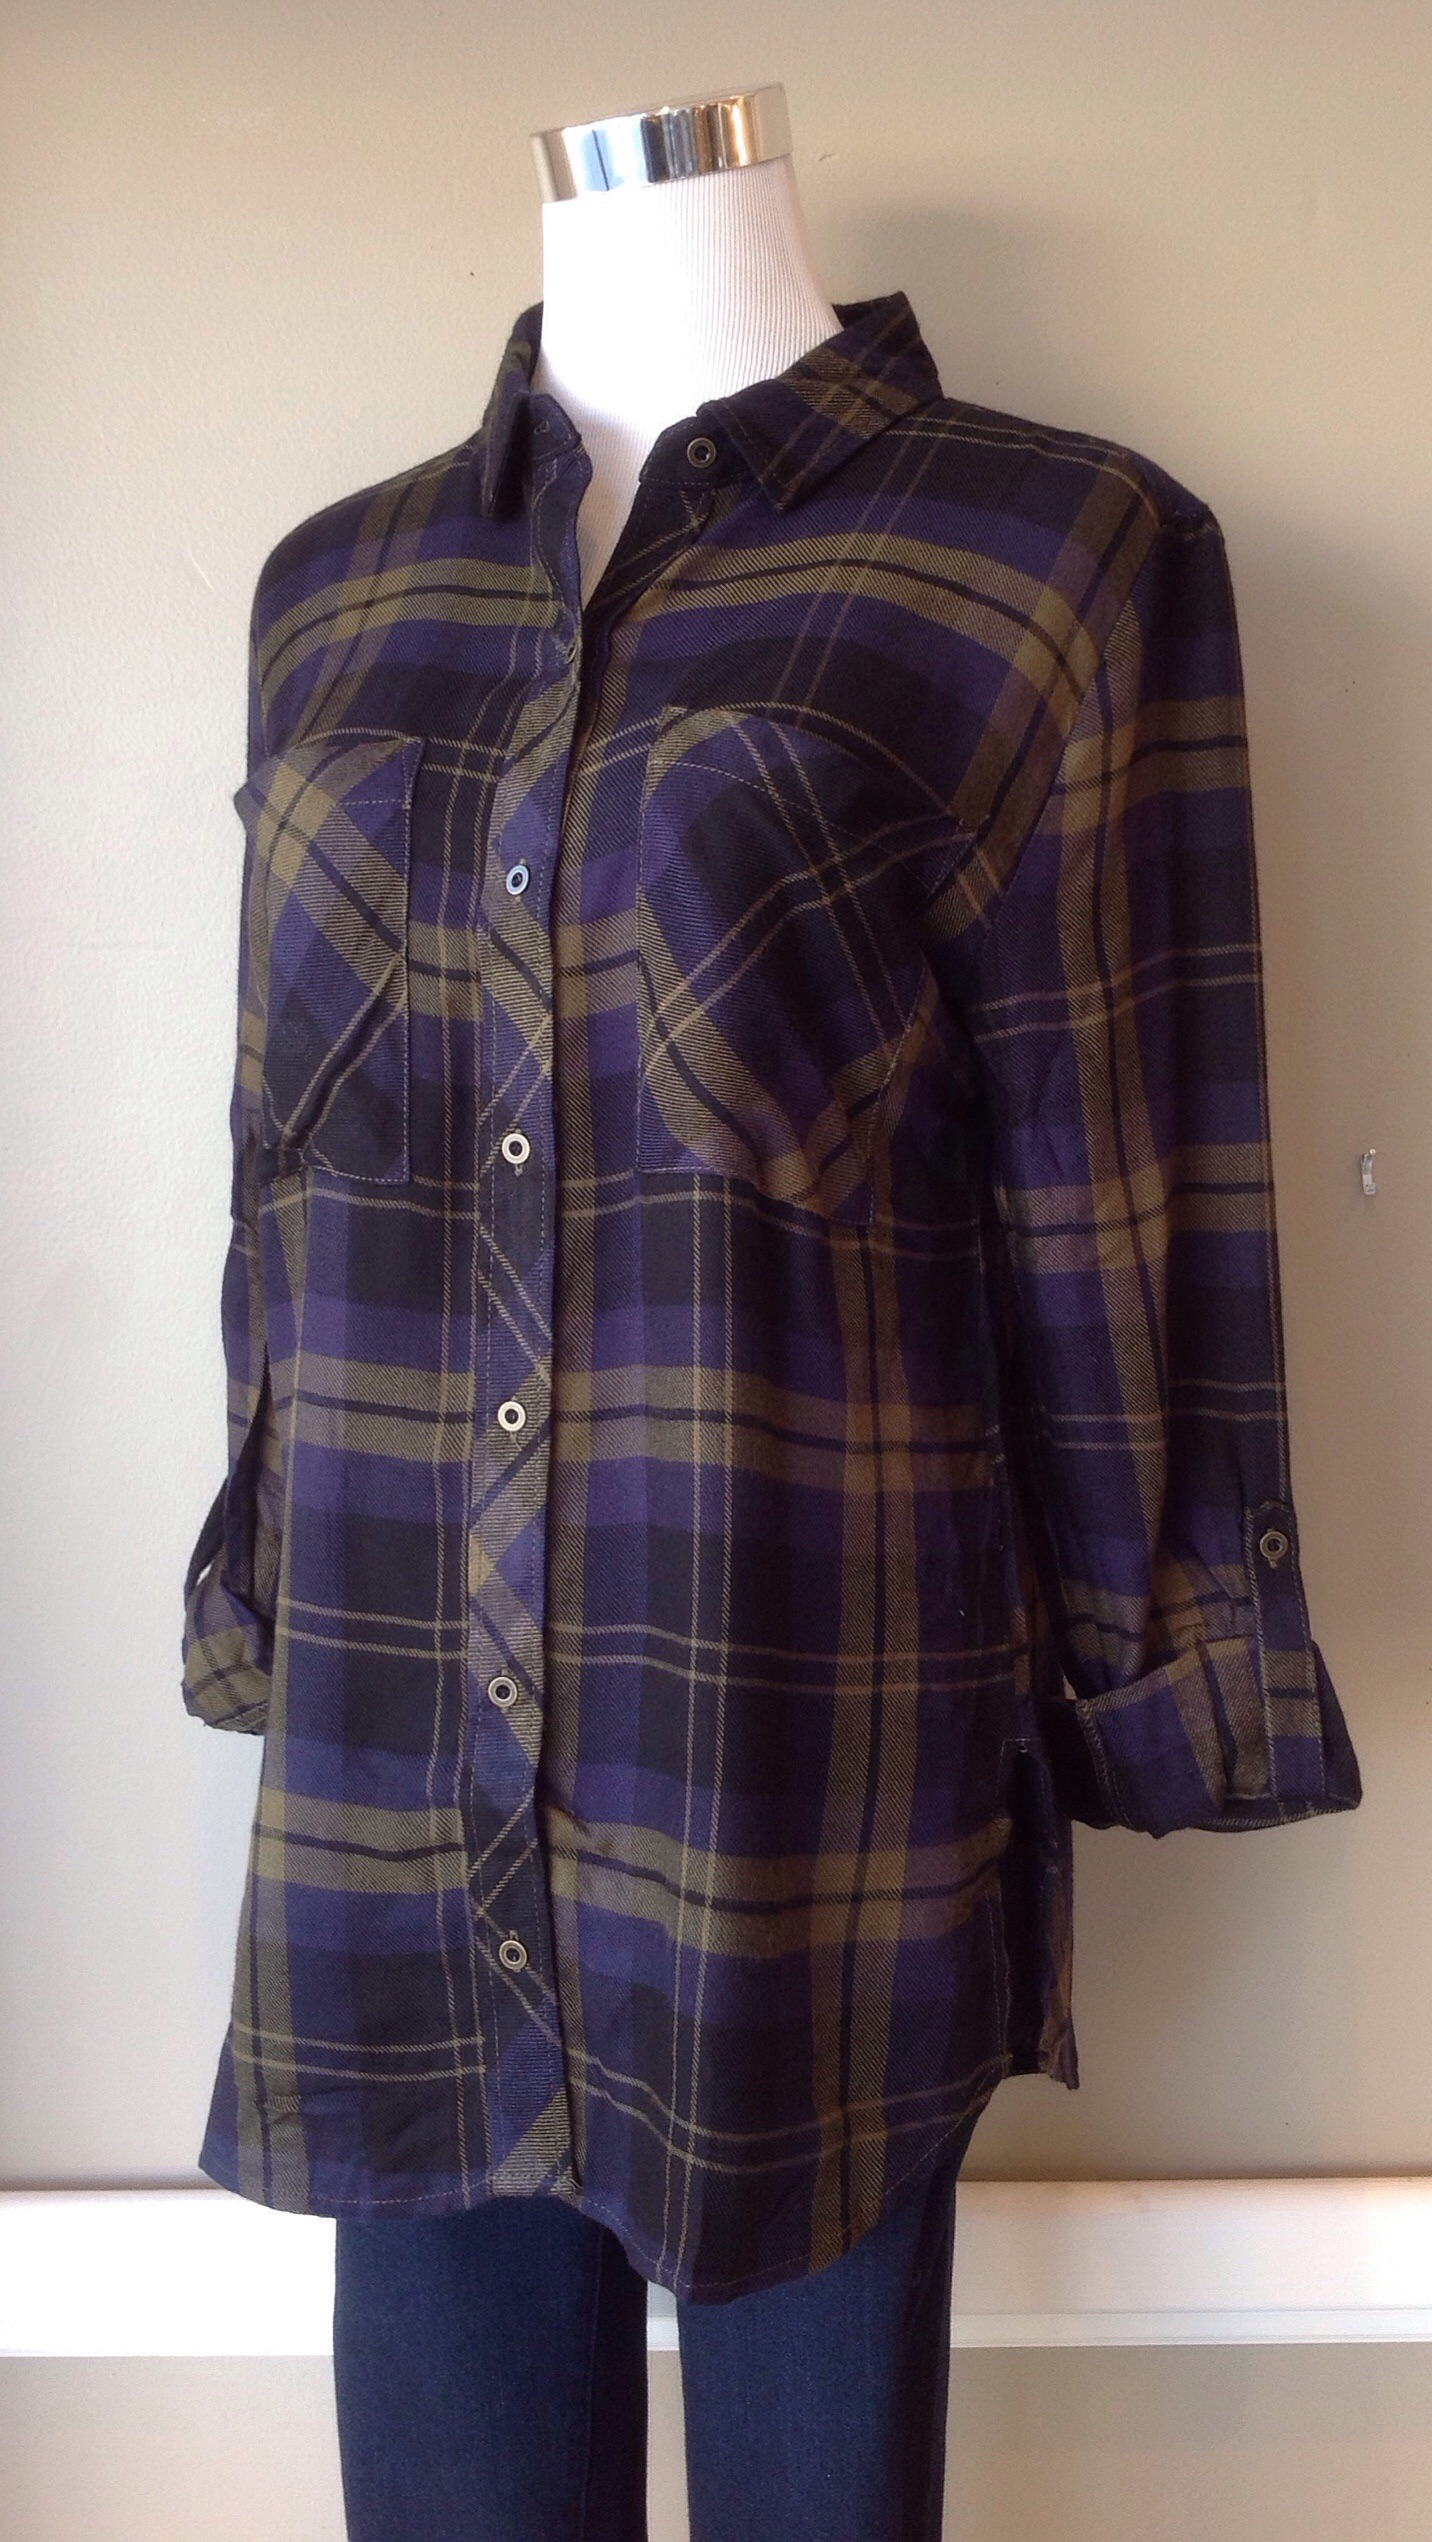 Rayon plaid button-down in olive/navy, $34